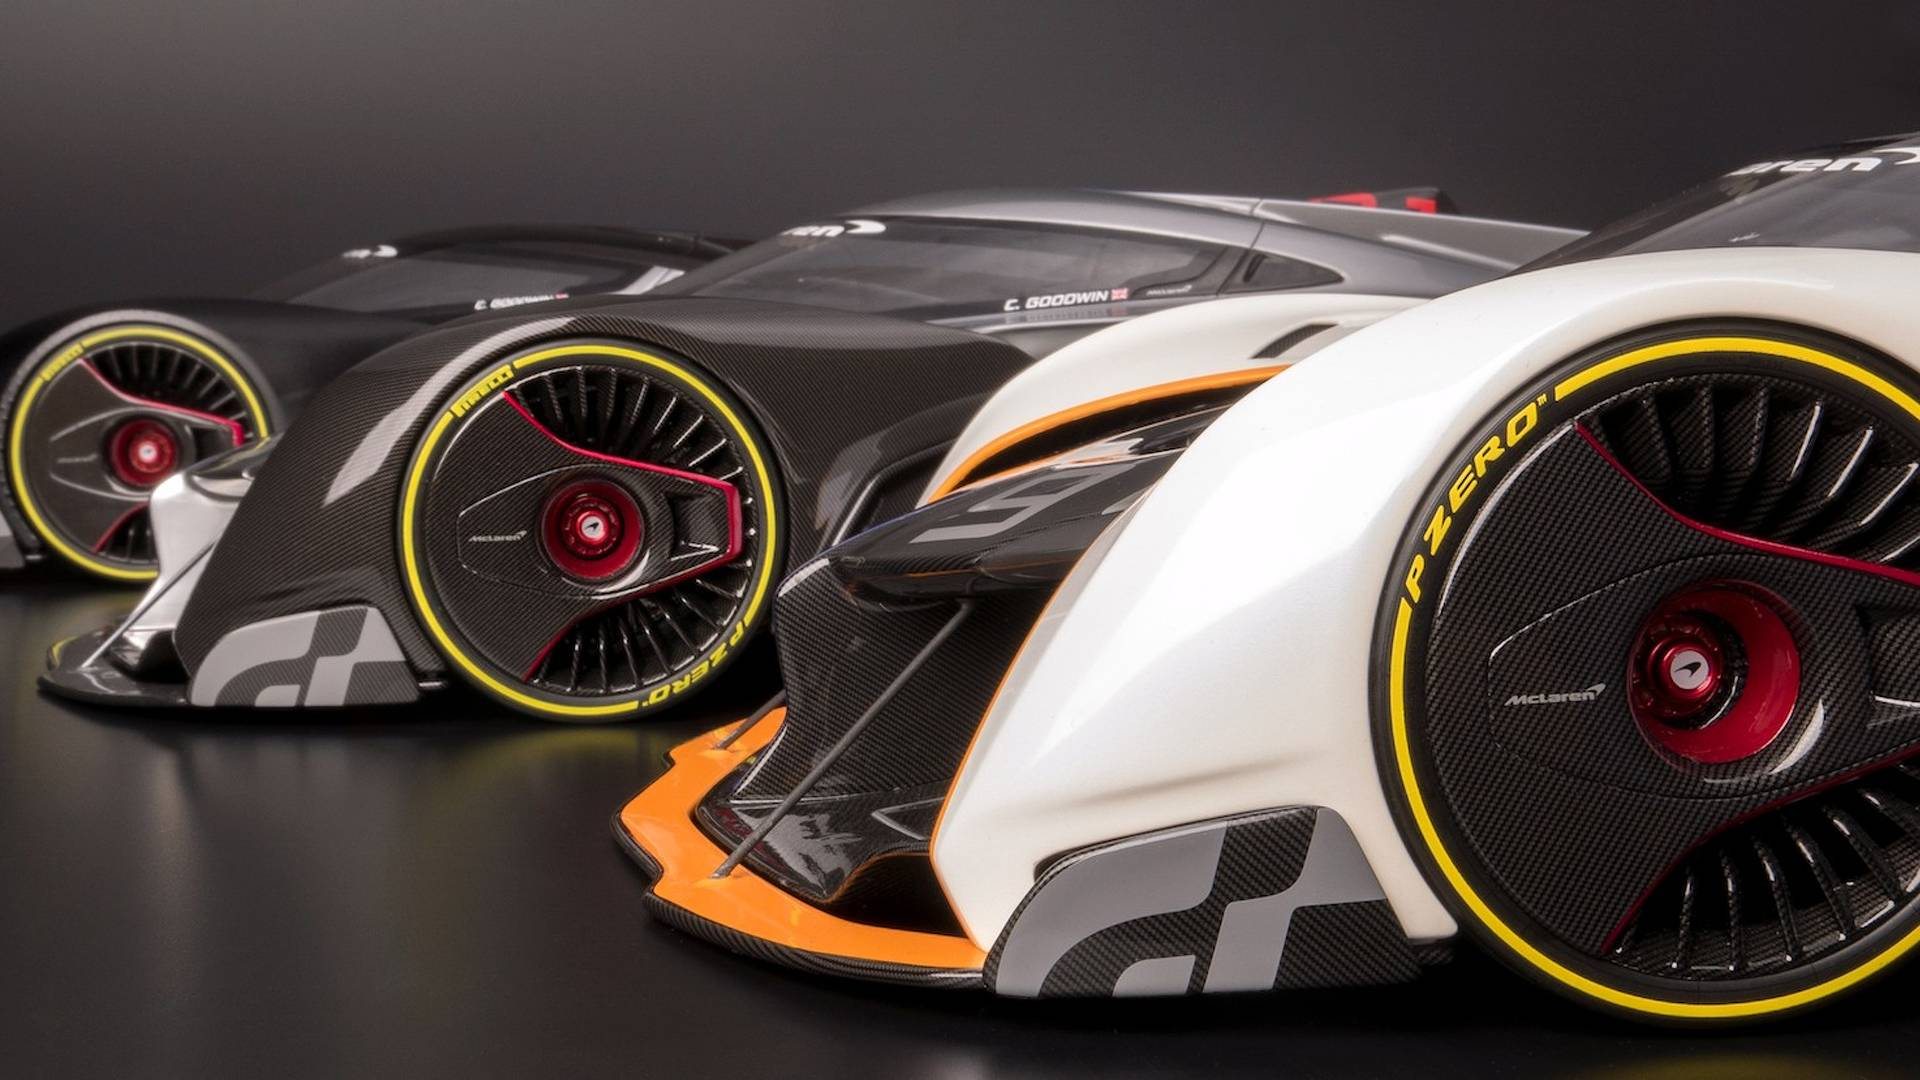 mclaren-ultimate-vision-gt-scale-model (14)